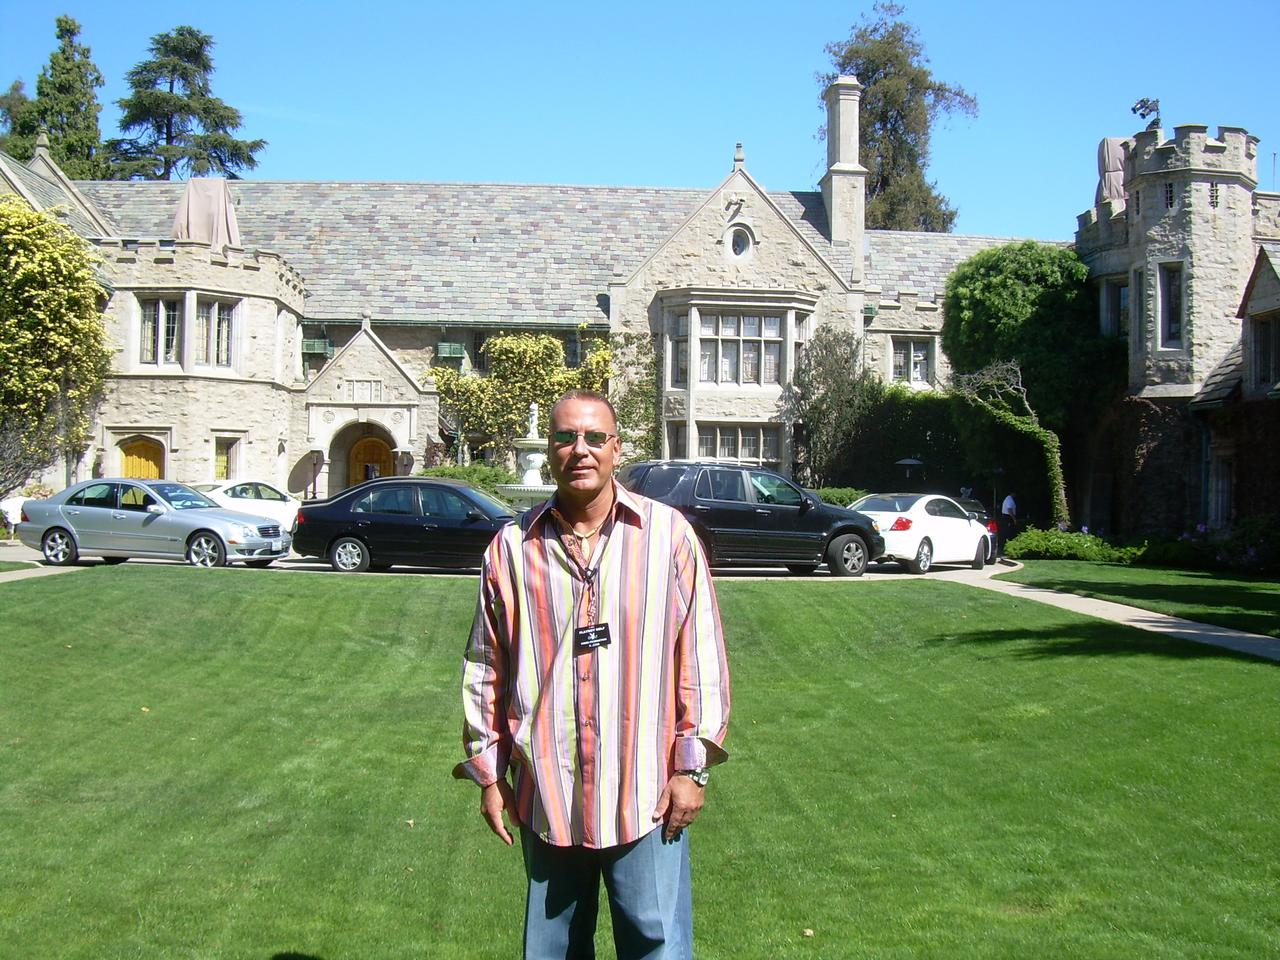 h-at-playboy-mansion.jpg